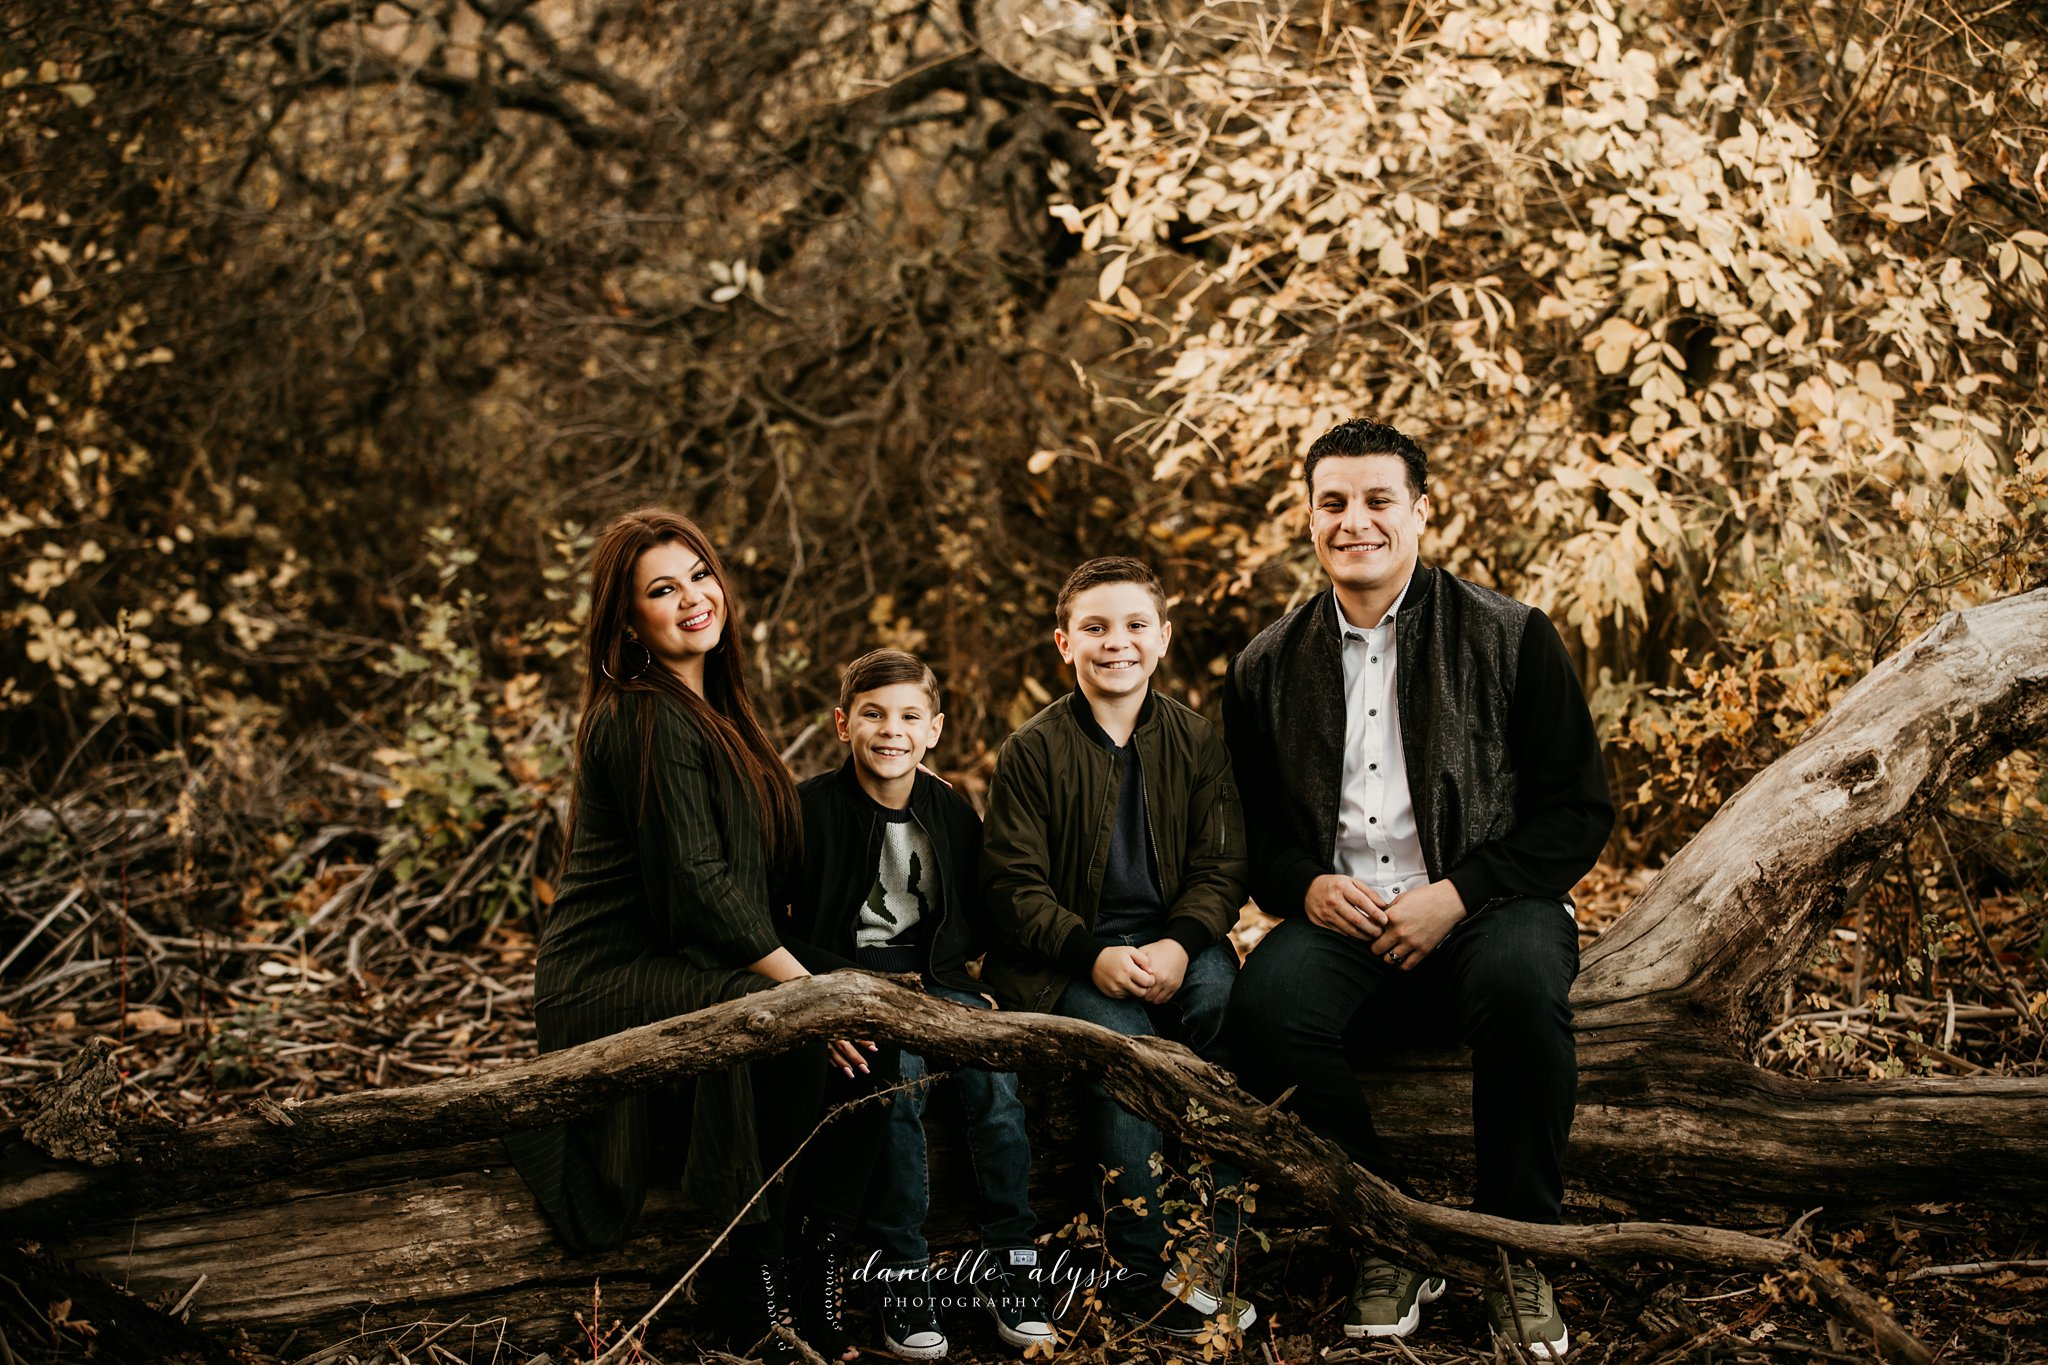 181125_fall_family_portrait_cosumnes_river_preserve_brittney_danielle_alysse_photography_16_WEB.jpg